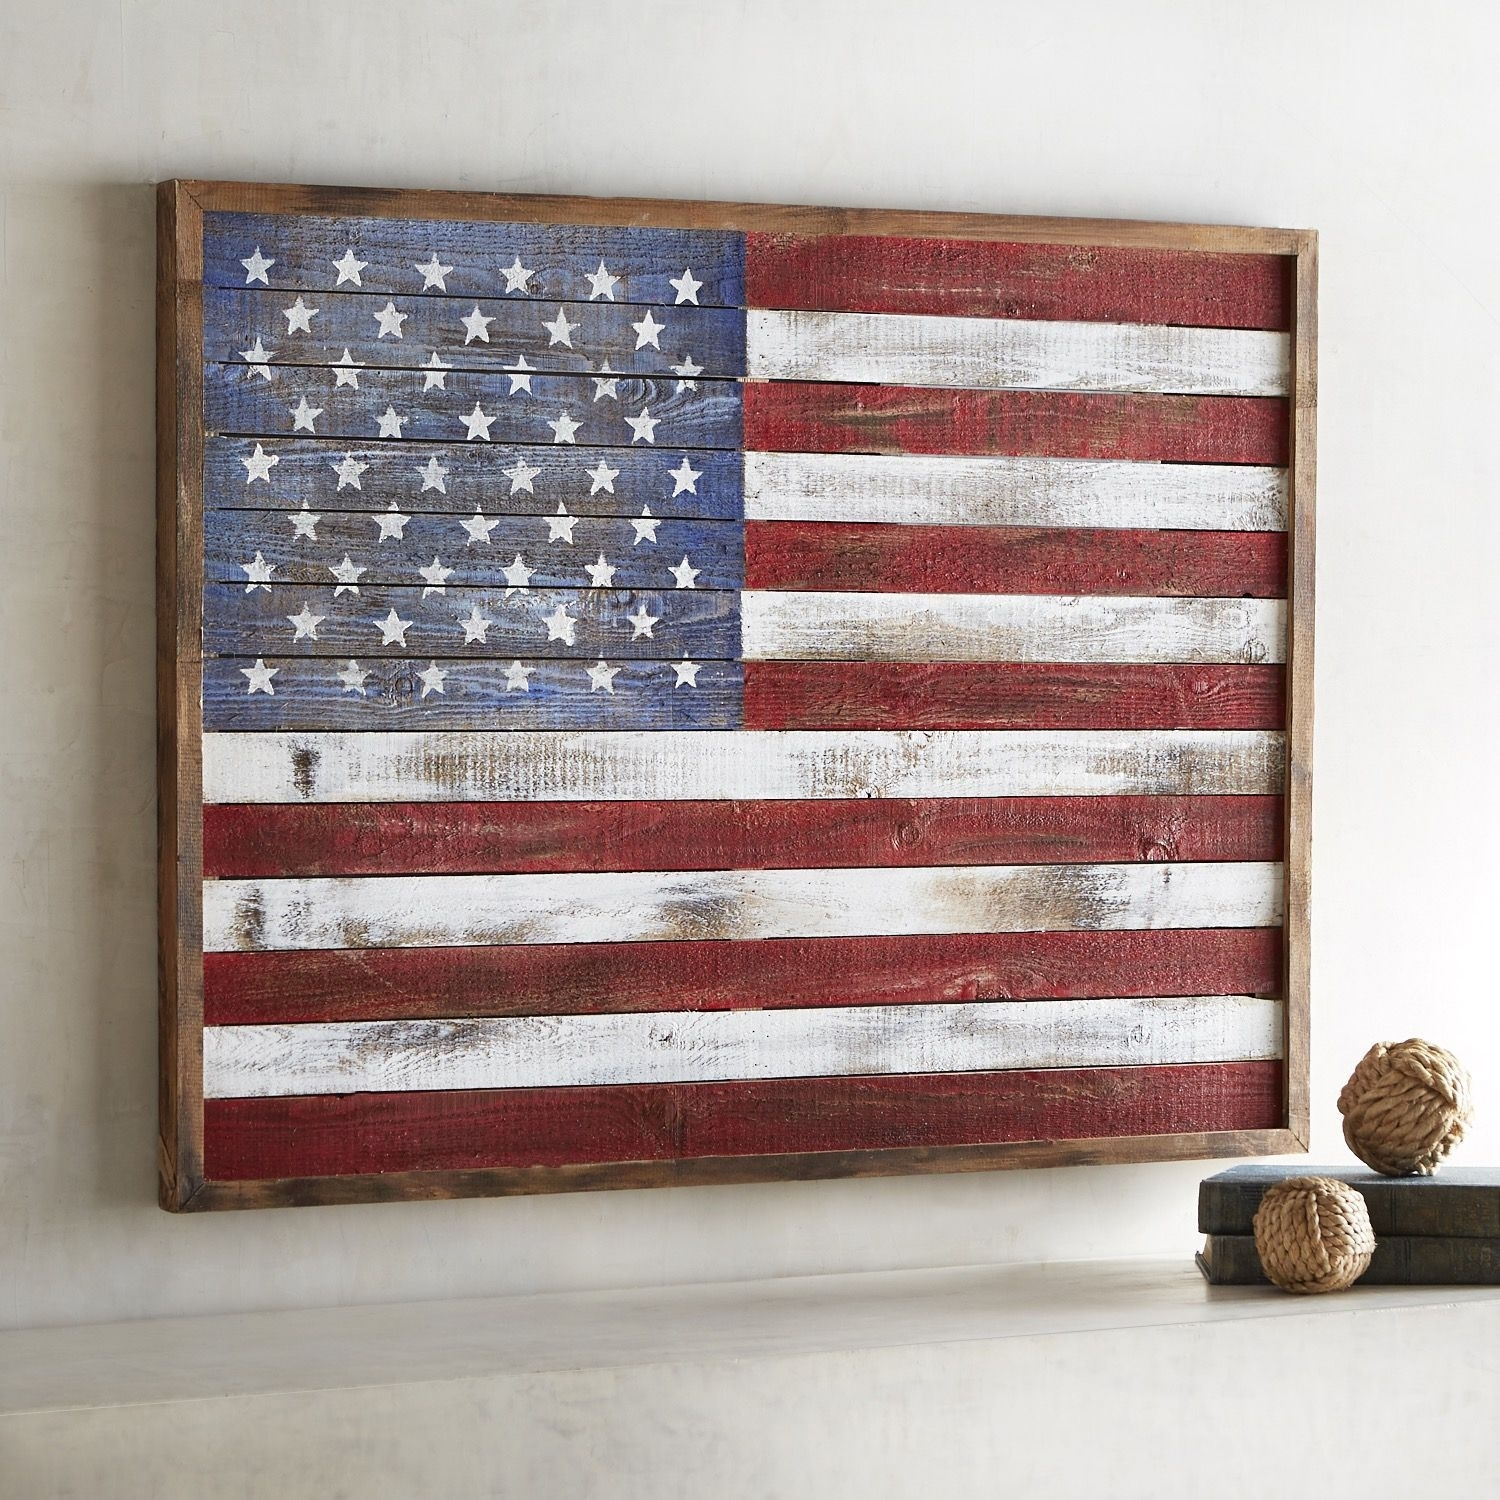 Shiplap American Flag Wall Decor | Products | Pinterest | Wall Decor Within 2018 American Flag Wall Art (View 10 of 15)